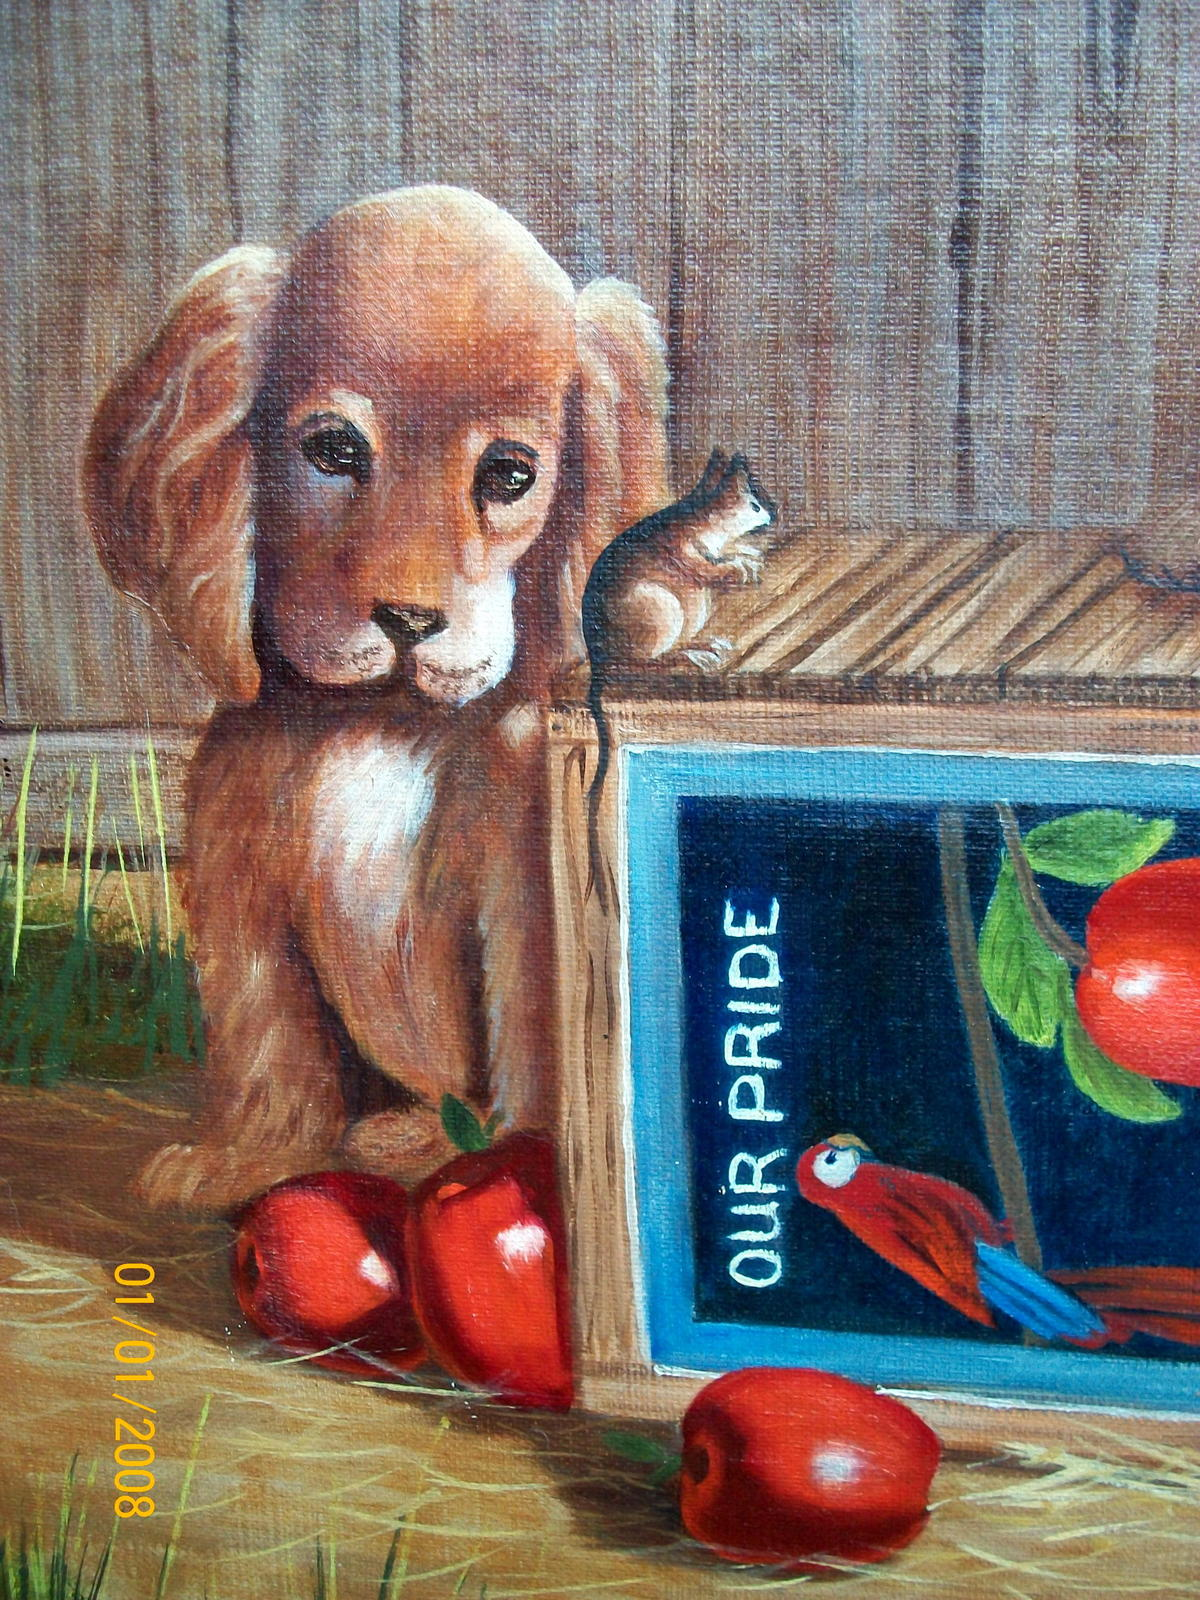 Sweet Pair Blonde Cocker Spaniel Dogs Unframed Oil Painting,Apples,Apple Crate image 3